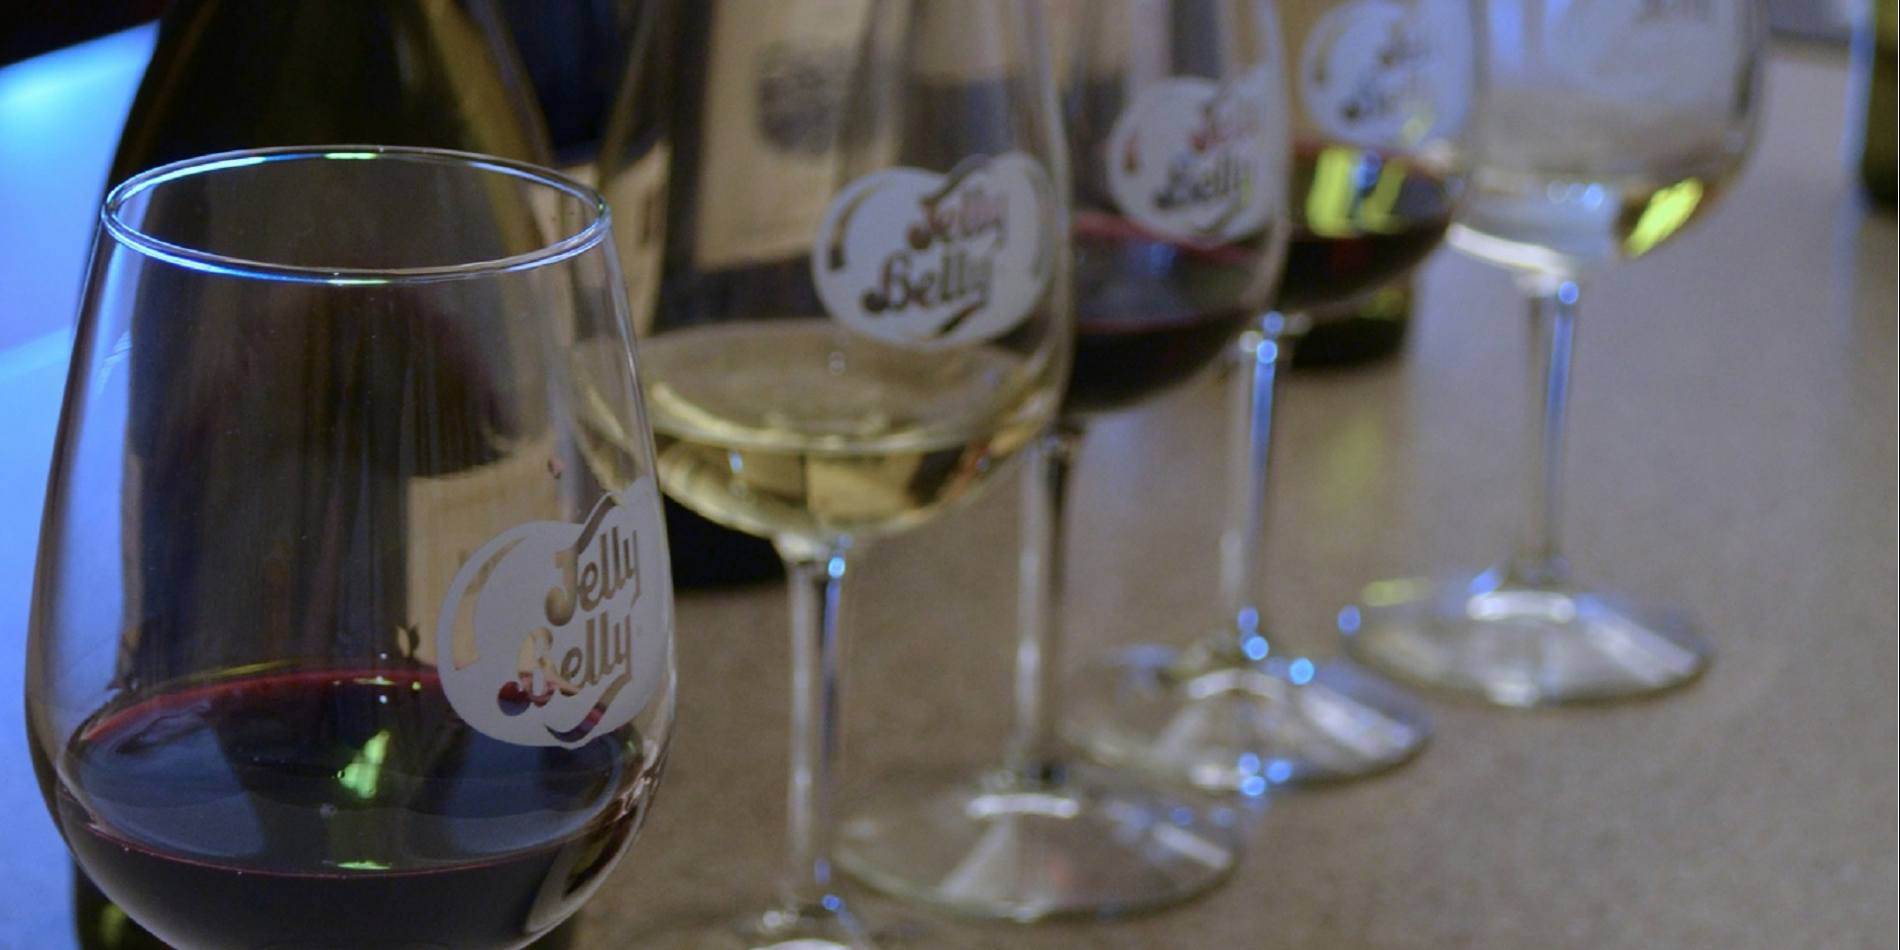 This delicious experience at Jelly Belly features wines from Suisun Valley and  hand-made confections from the Jelly Belly Chocolate Shoppe